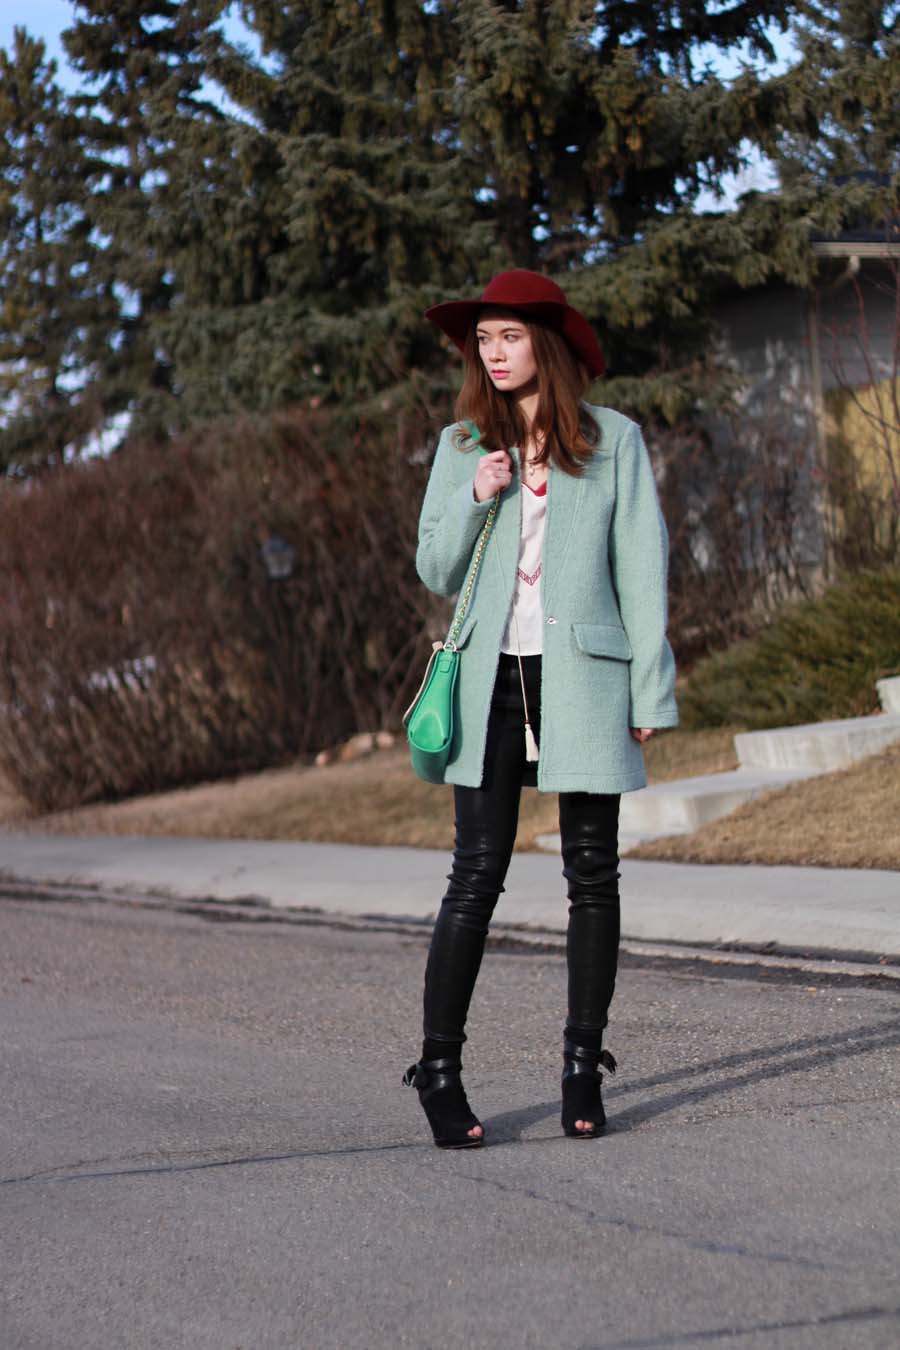 sage green coat, mint coat, botkier, glamorous clothing, glamorous coat, nasty gal, felt hat, bohemian style, bohemian chic, spring fashion, leather pants, peep toe boots